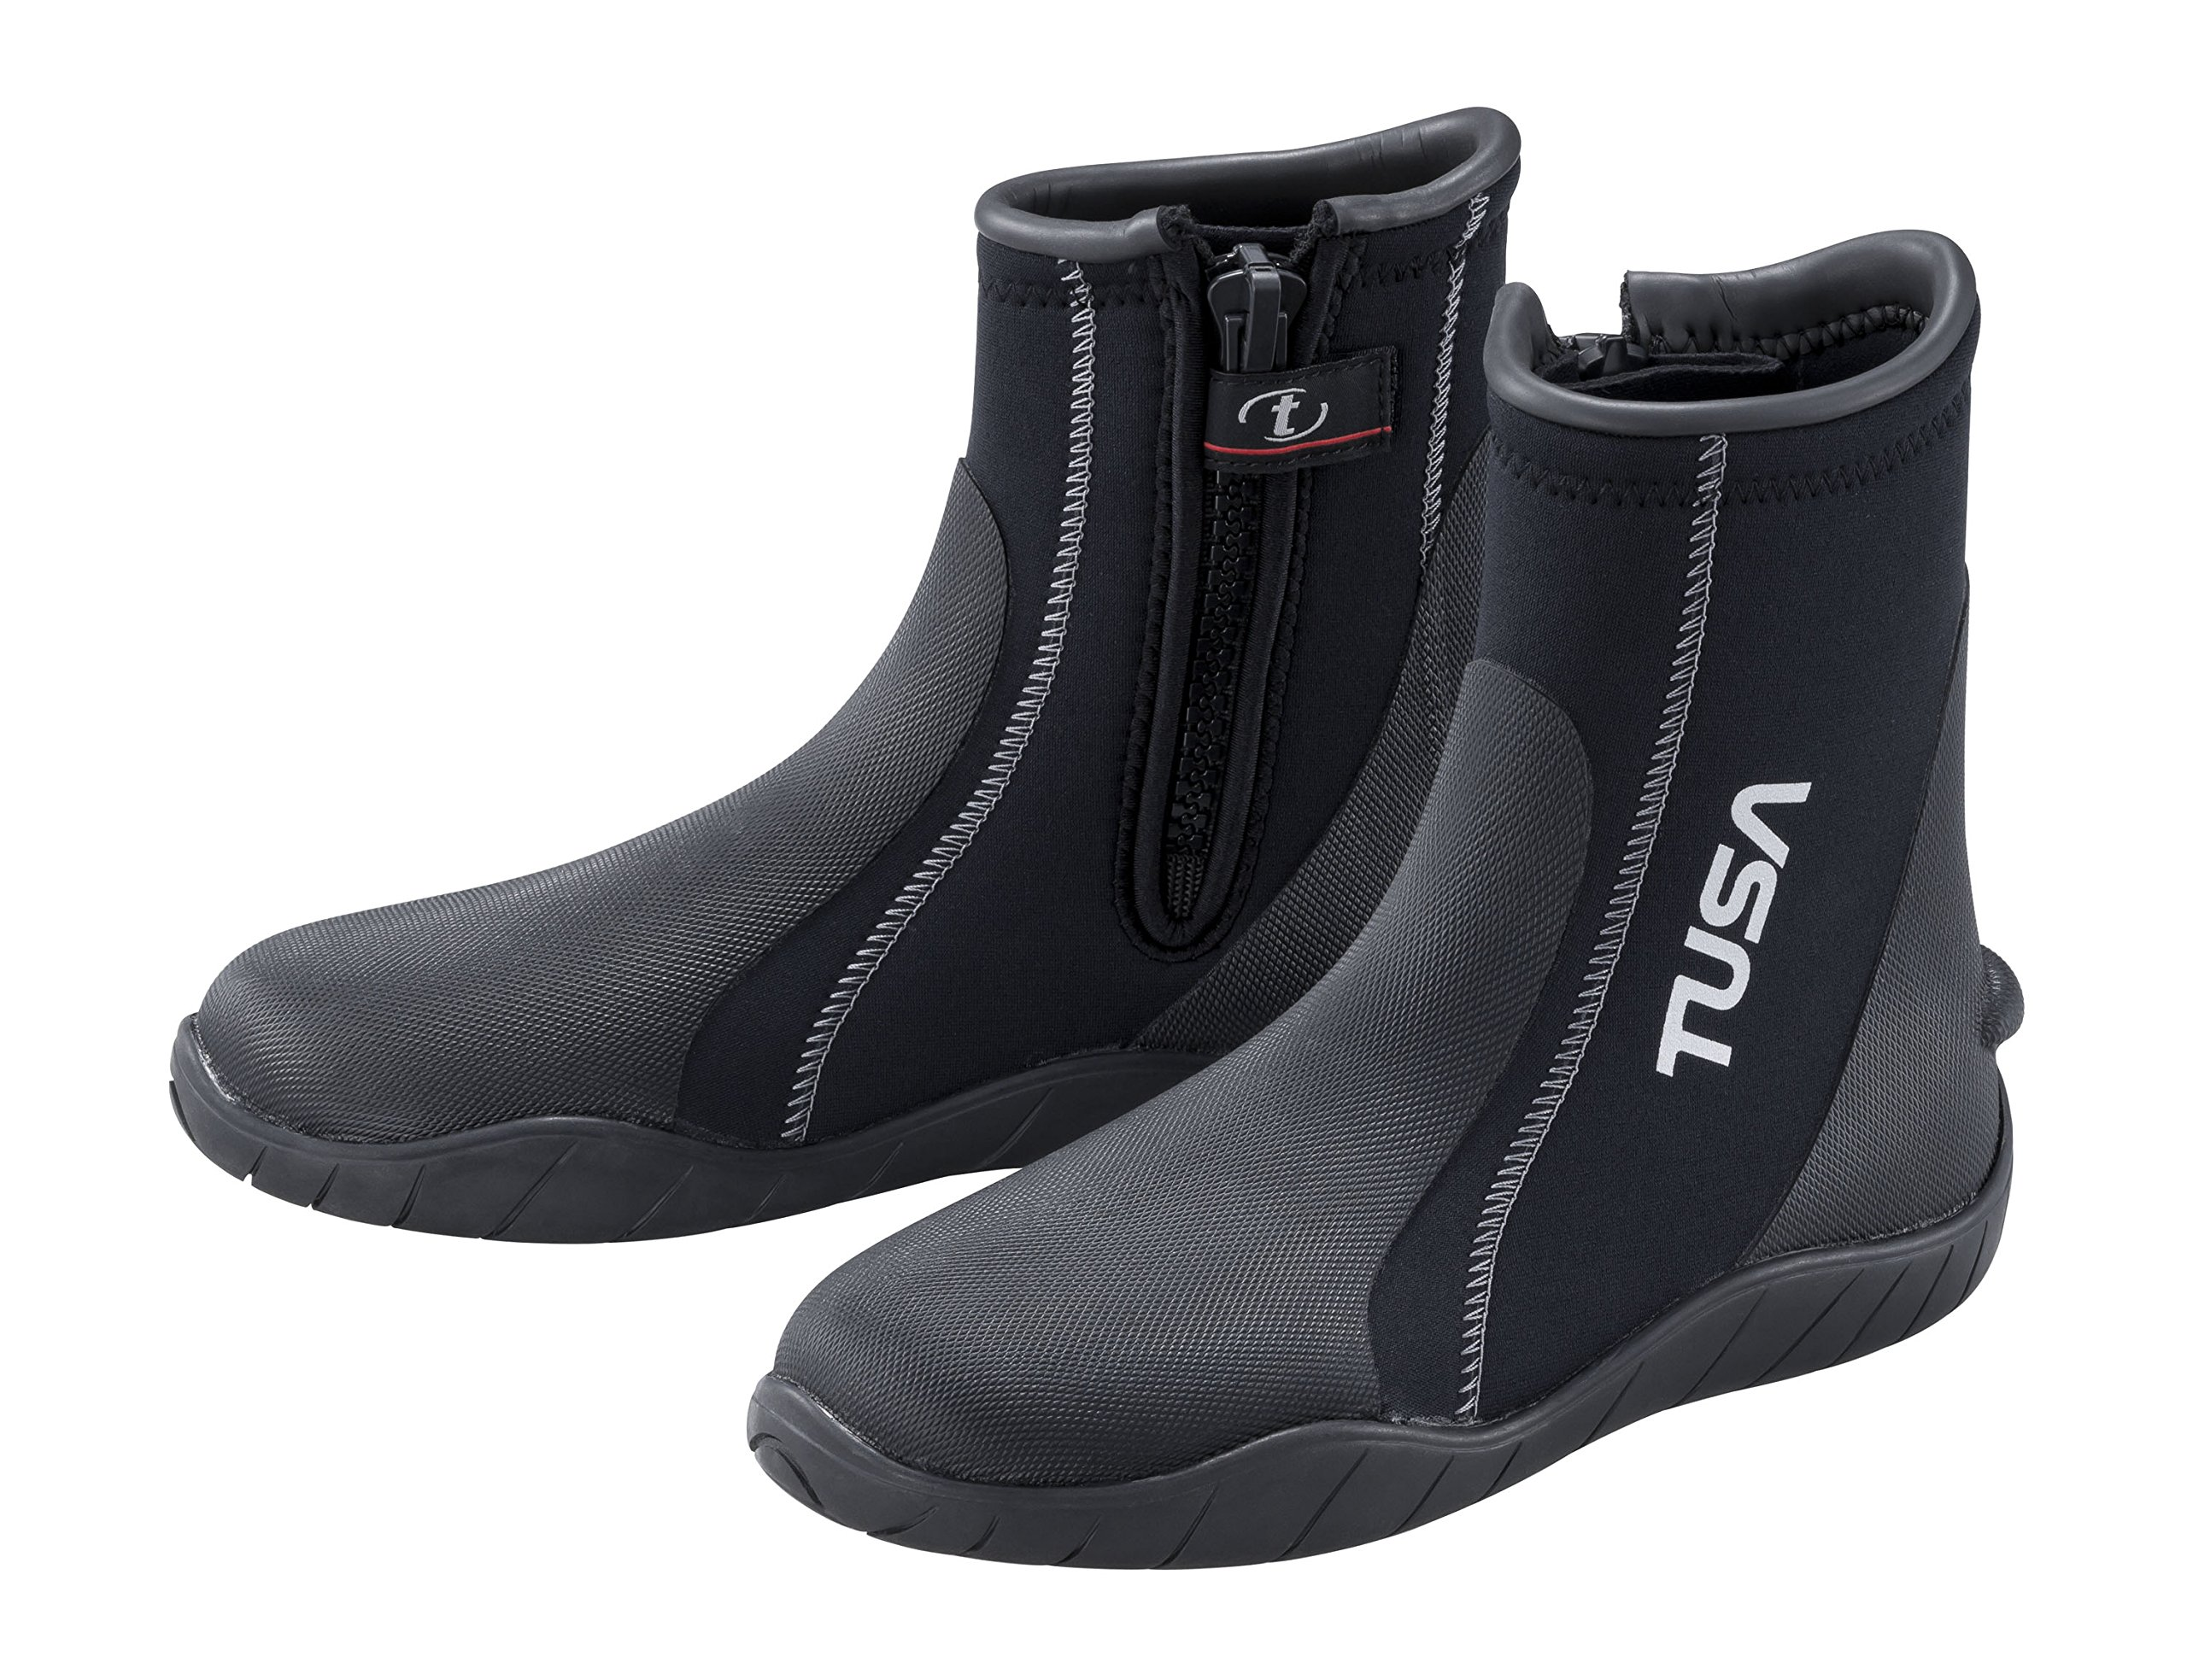 TUSA DB-0101 Imprex 5mm Dive Boots (Mens 12 / Womens 13)